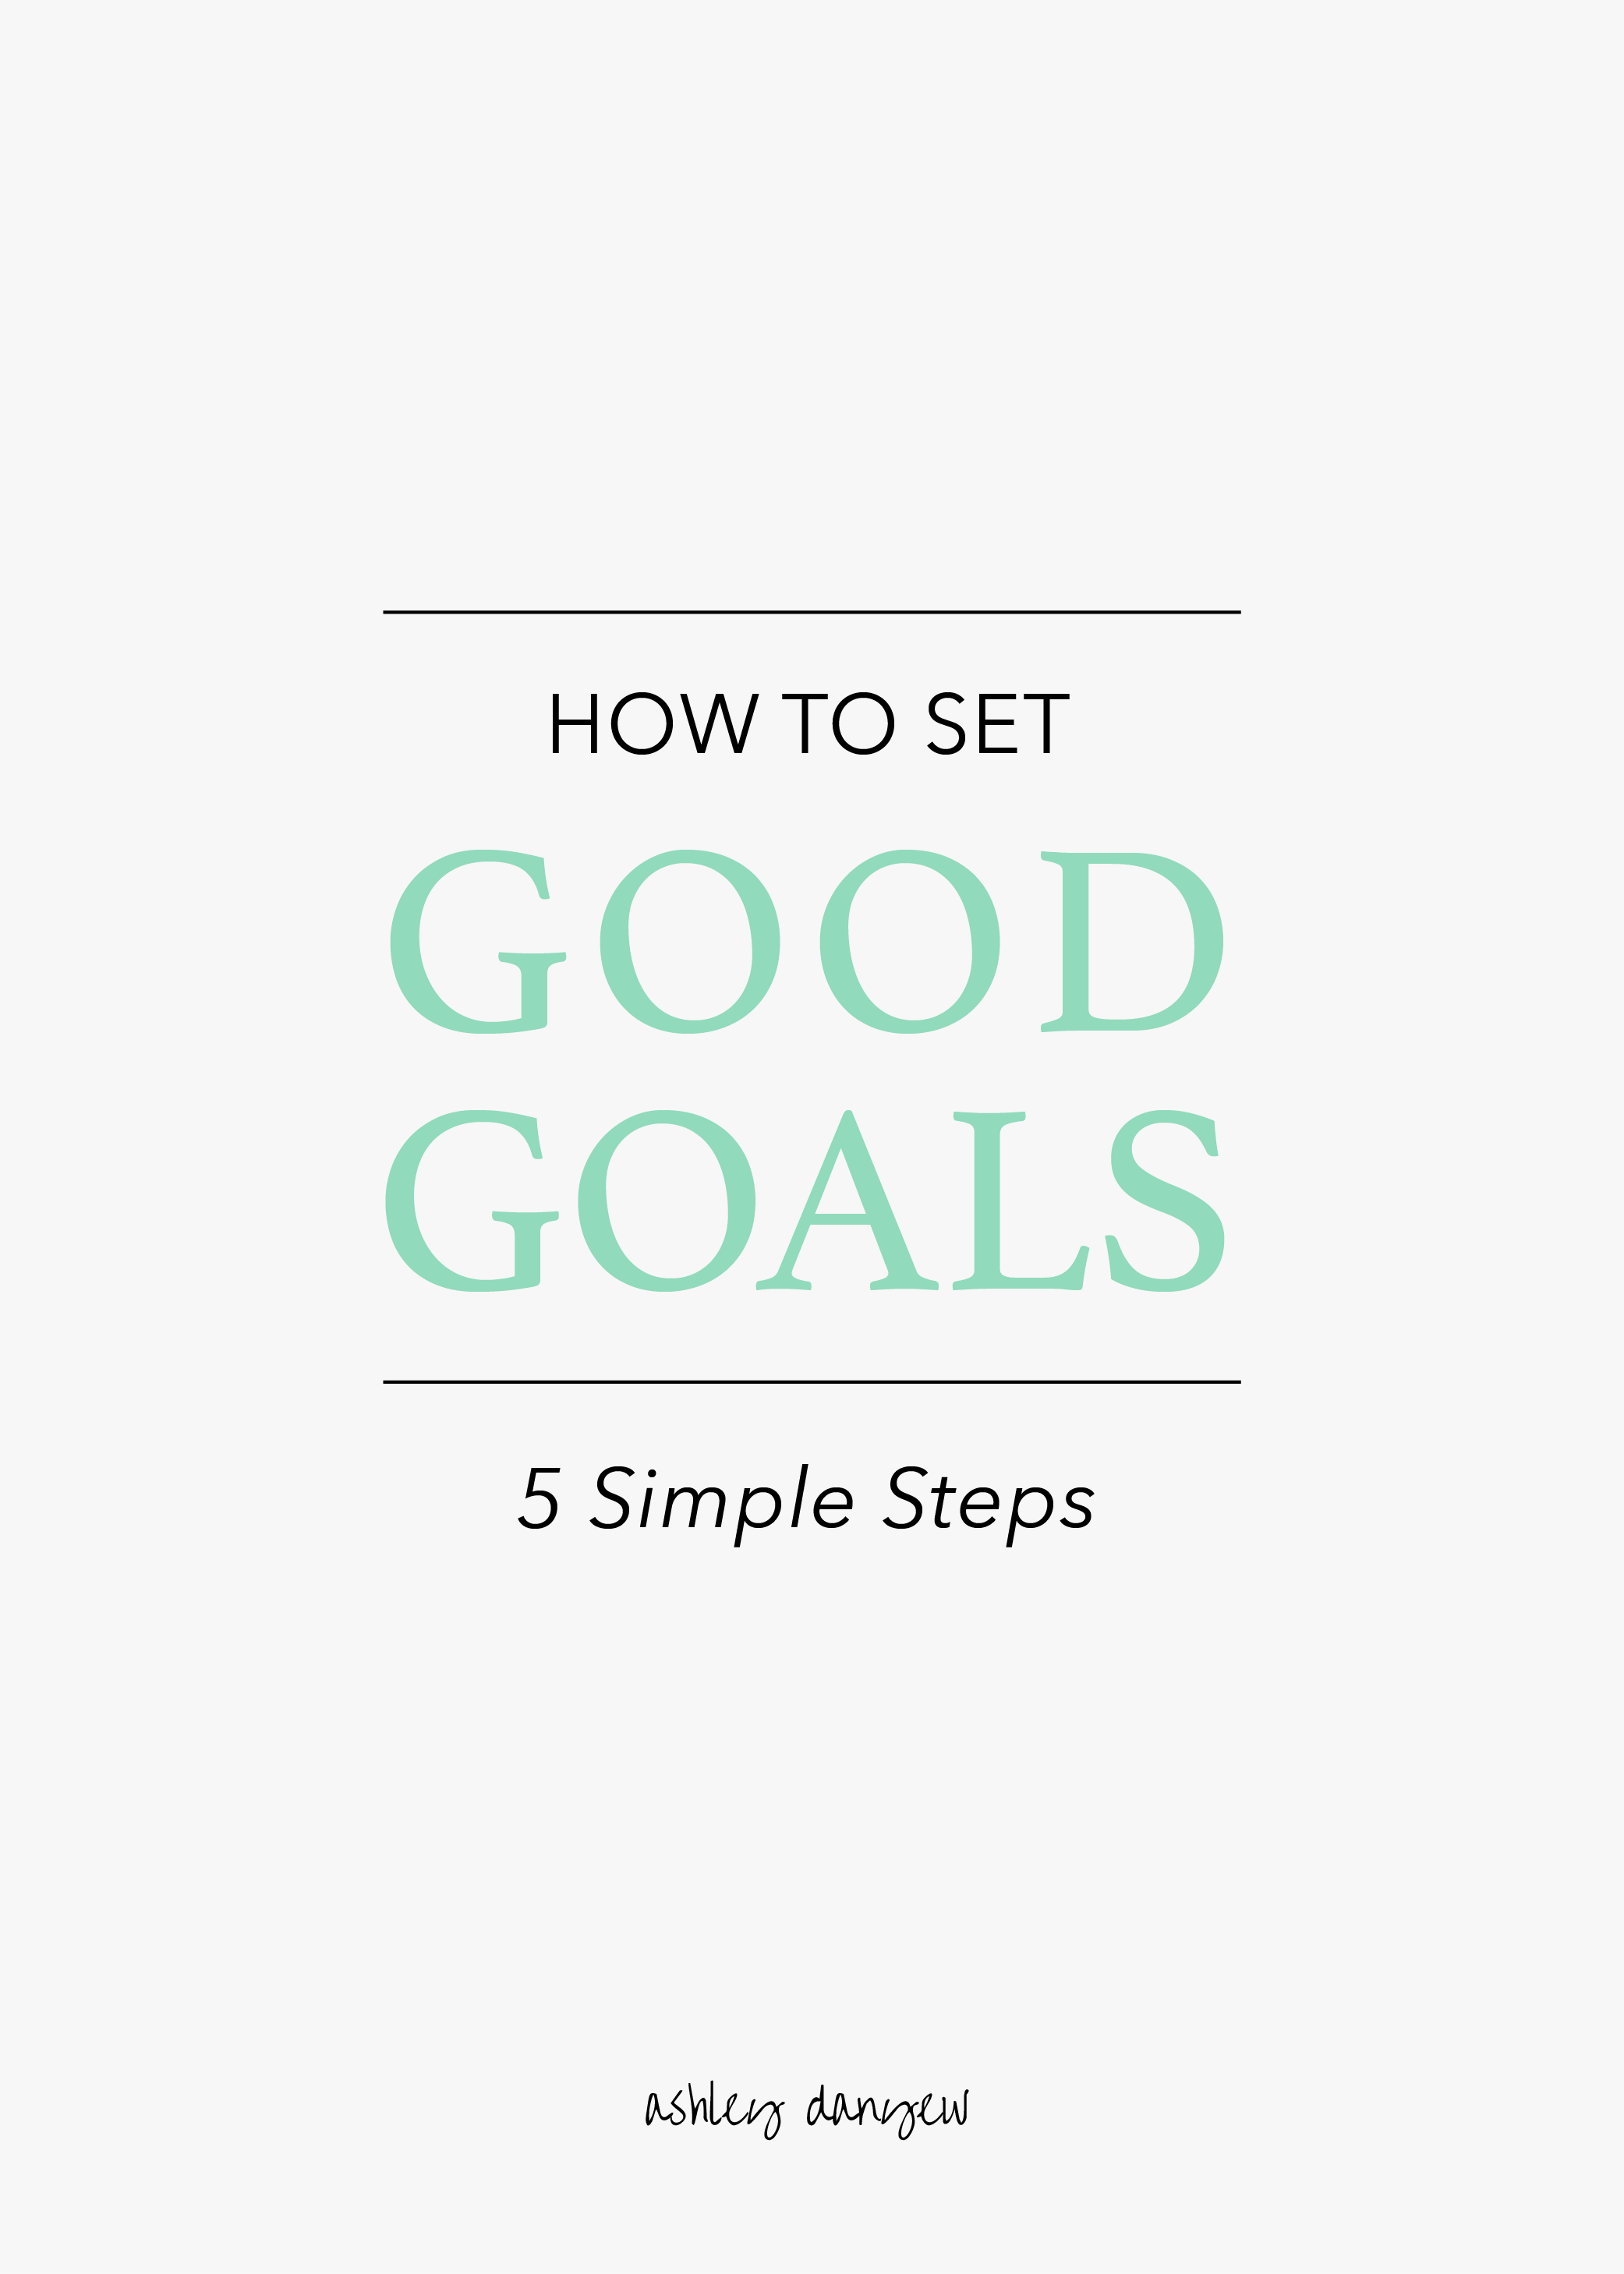 Copy of How to Set Good Goals: 5 Simple Steps